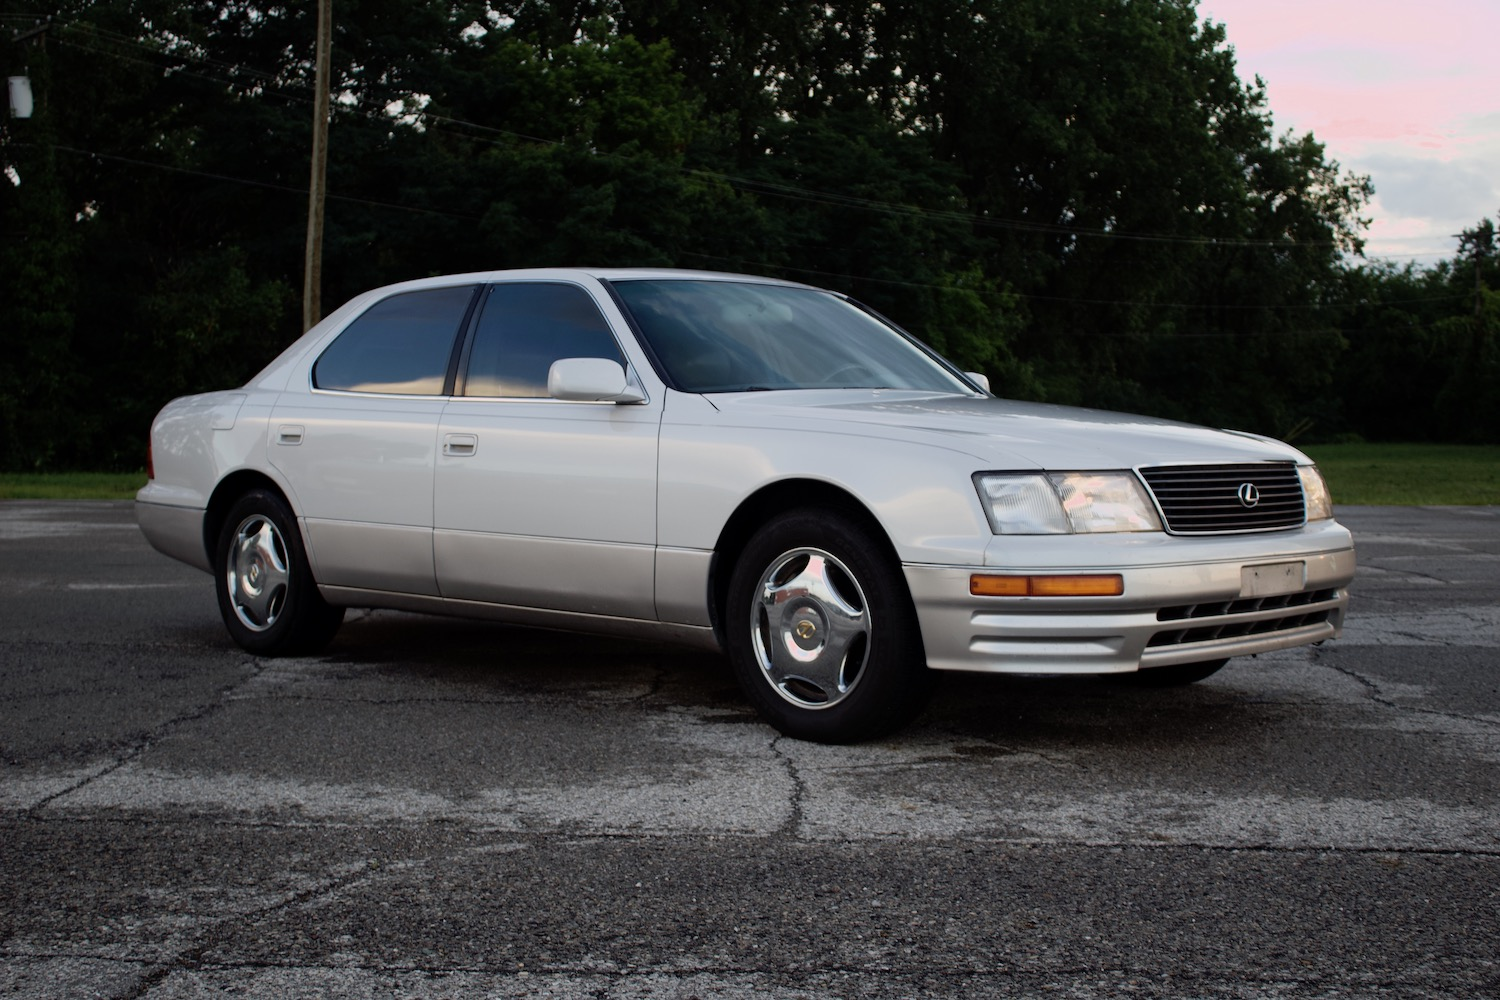 Almost 20 years later, the LS400 is still king of cross-country luxo cruising thumbnail